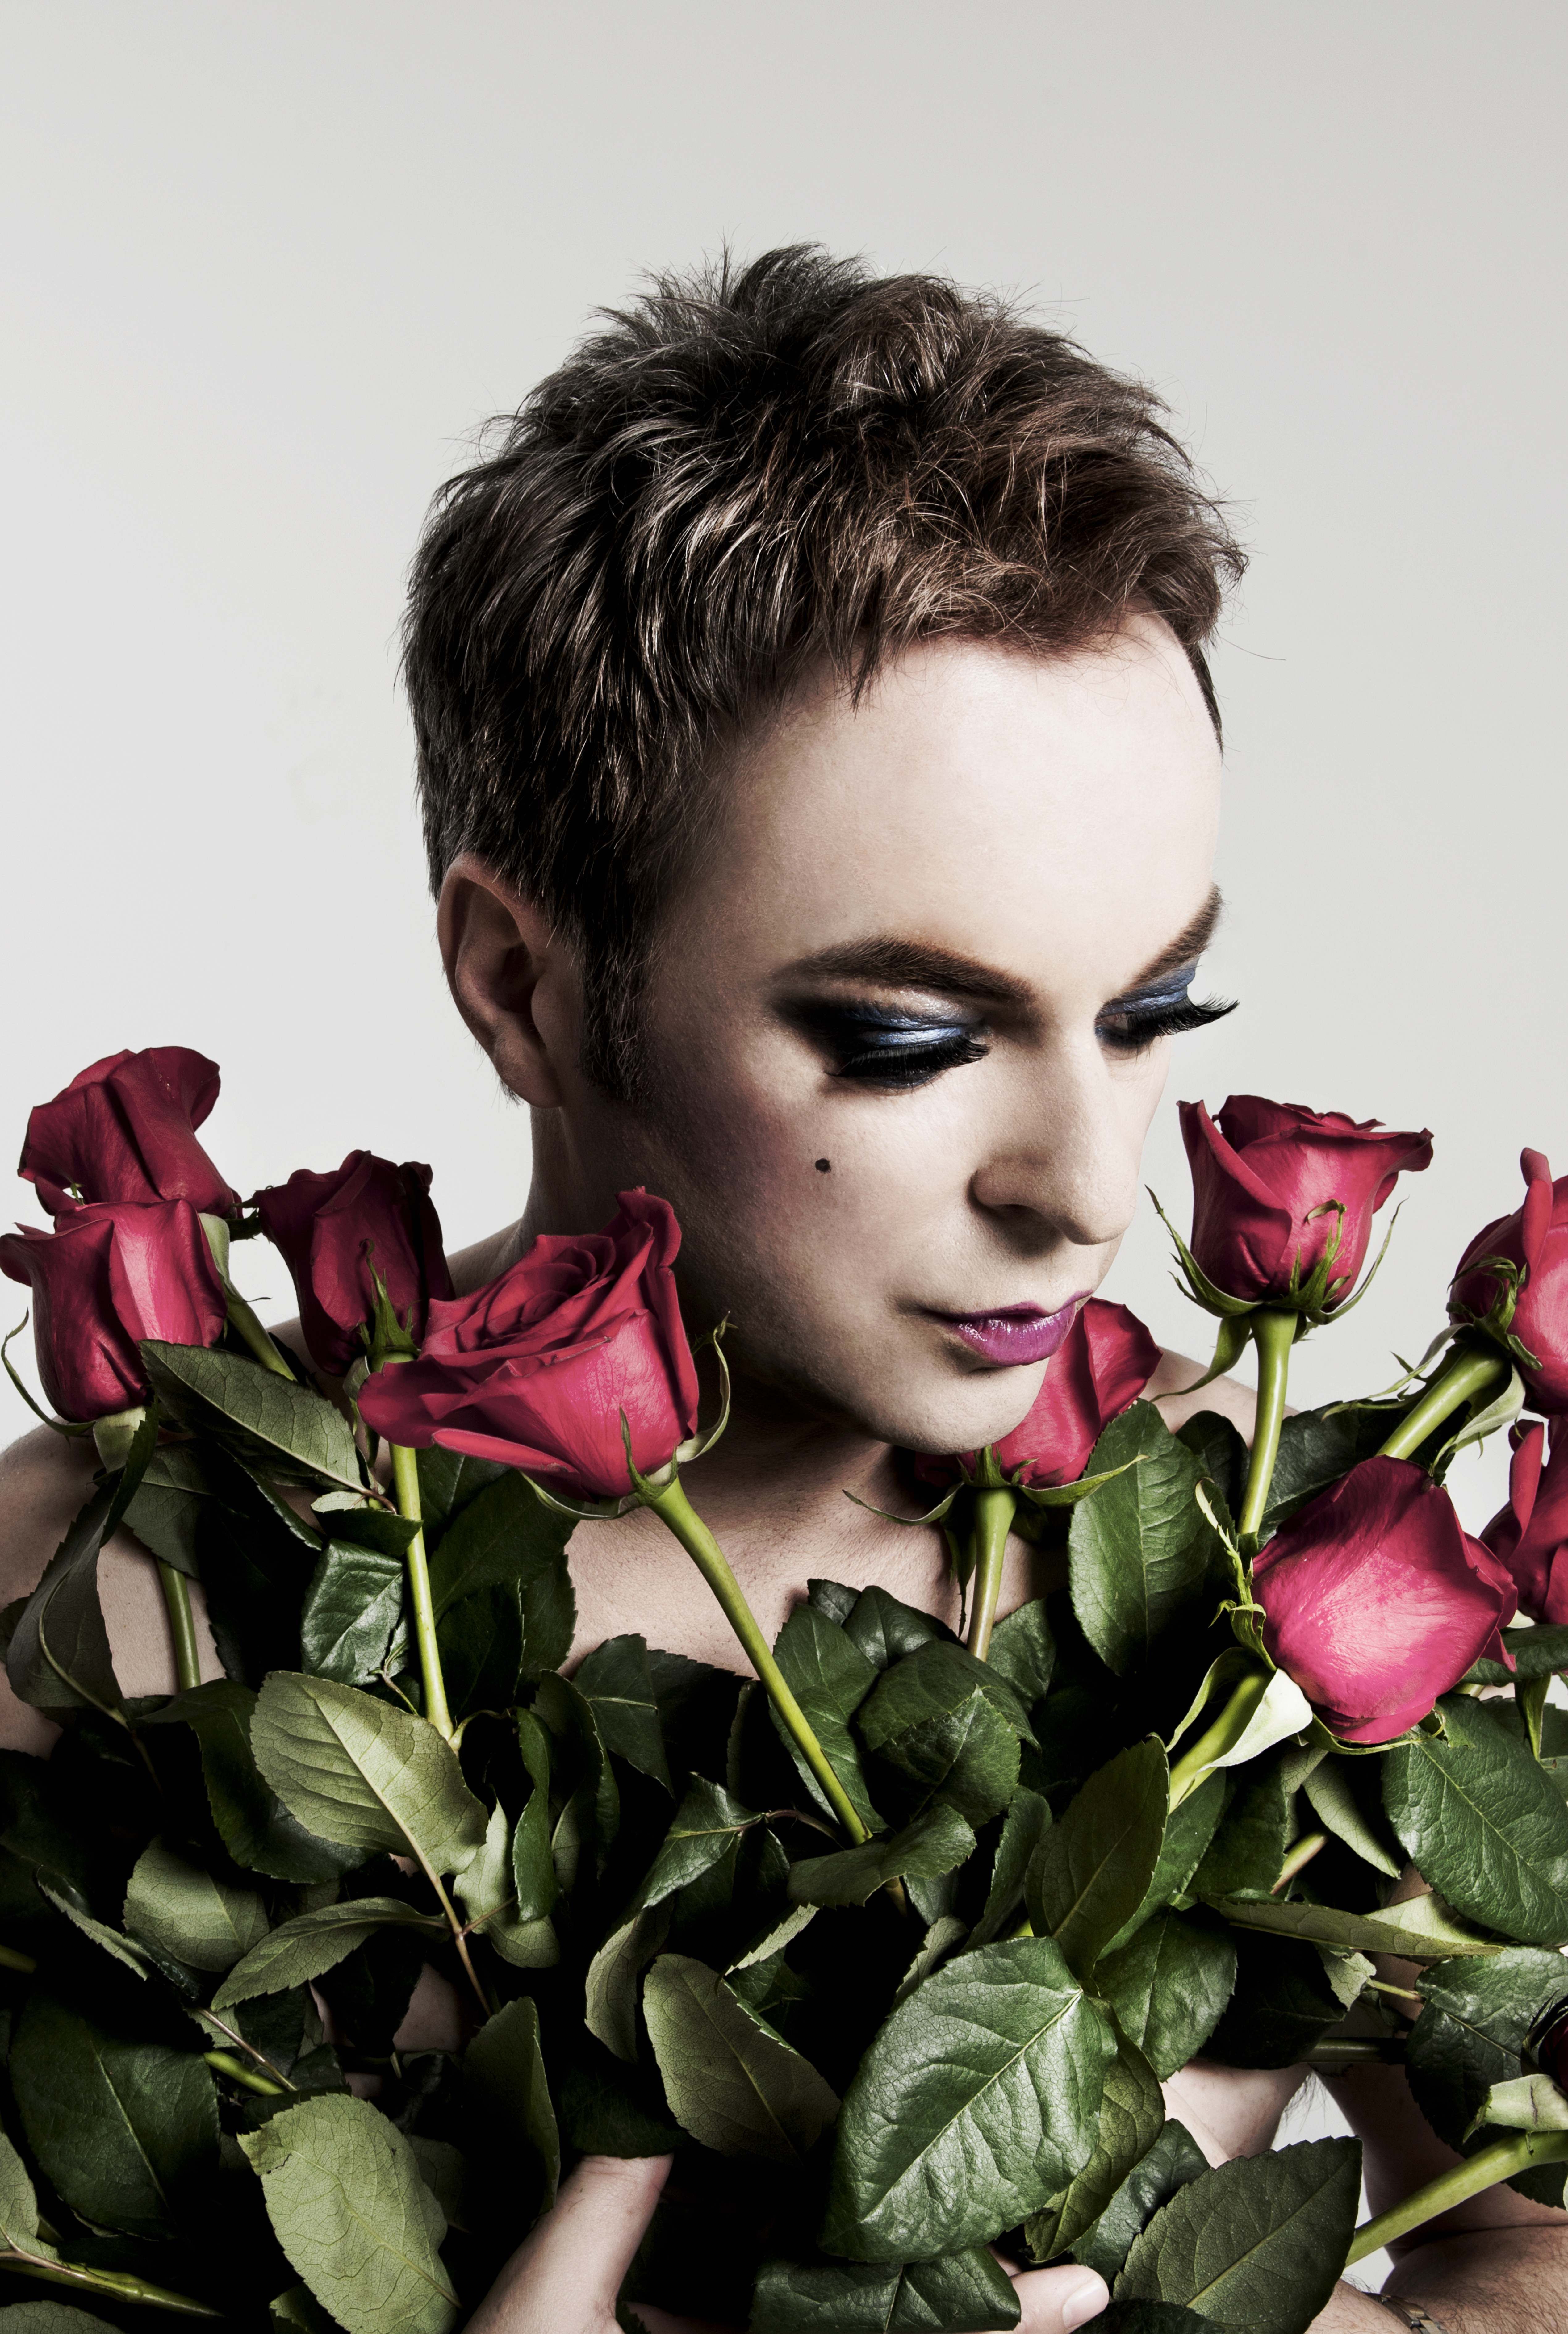 Julian Clary – Position Vacant: Apply Within